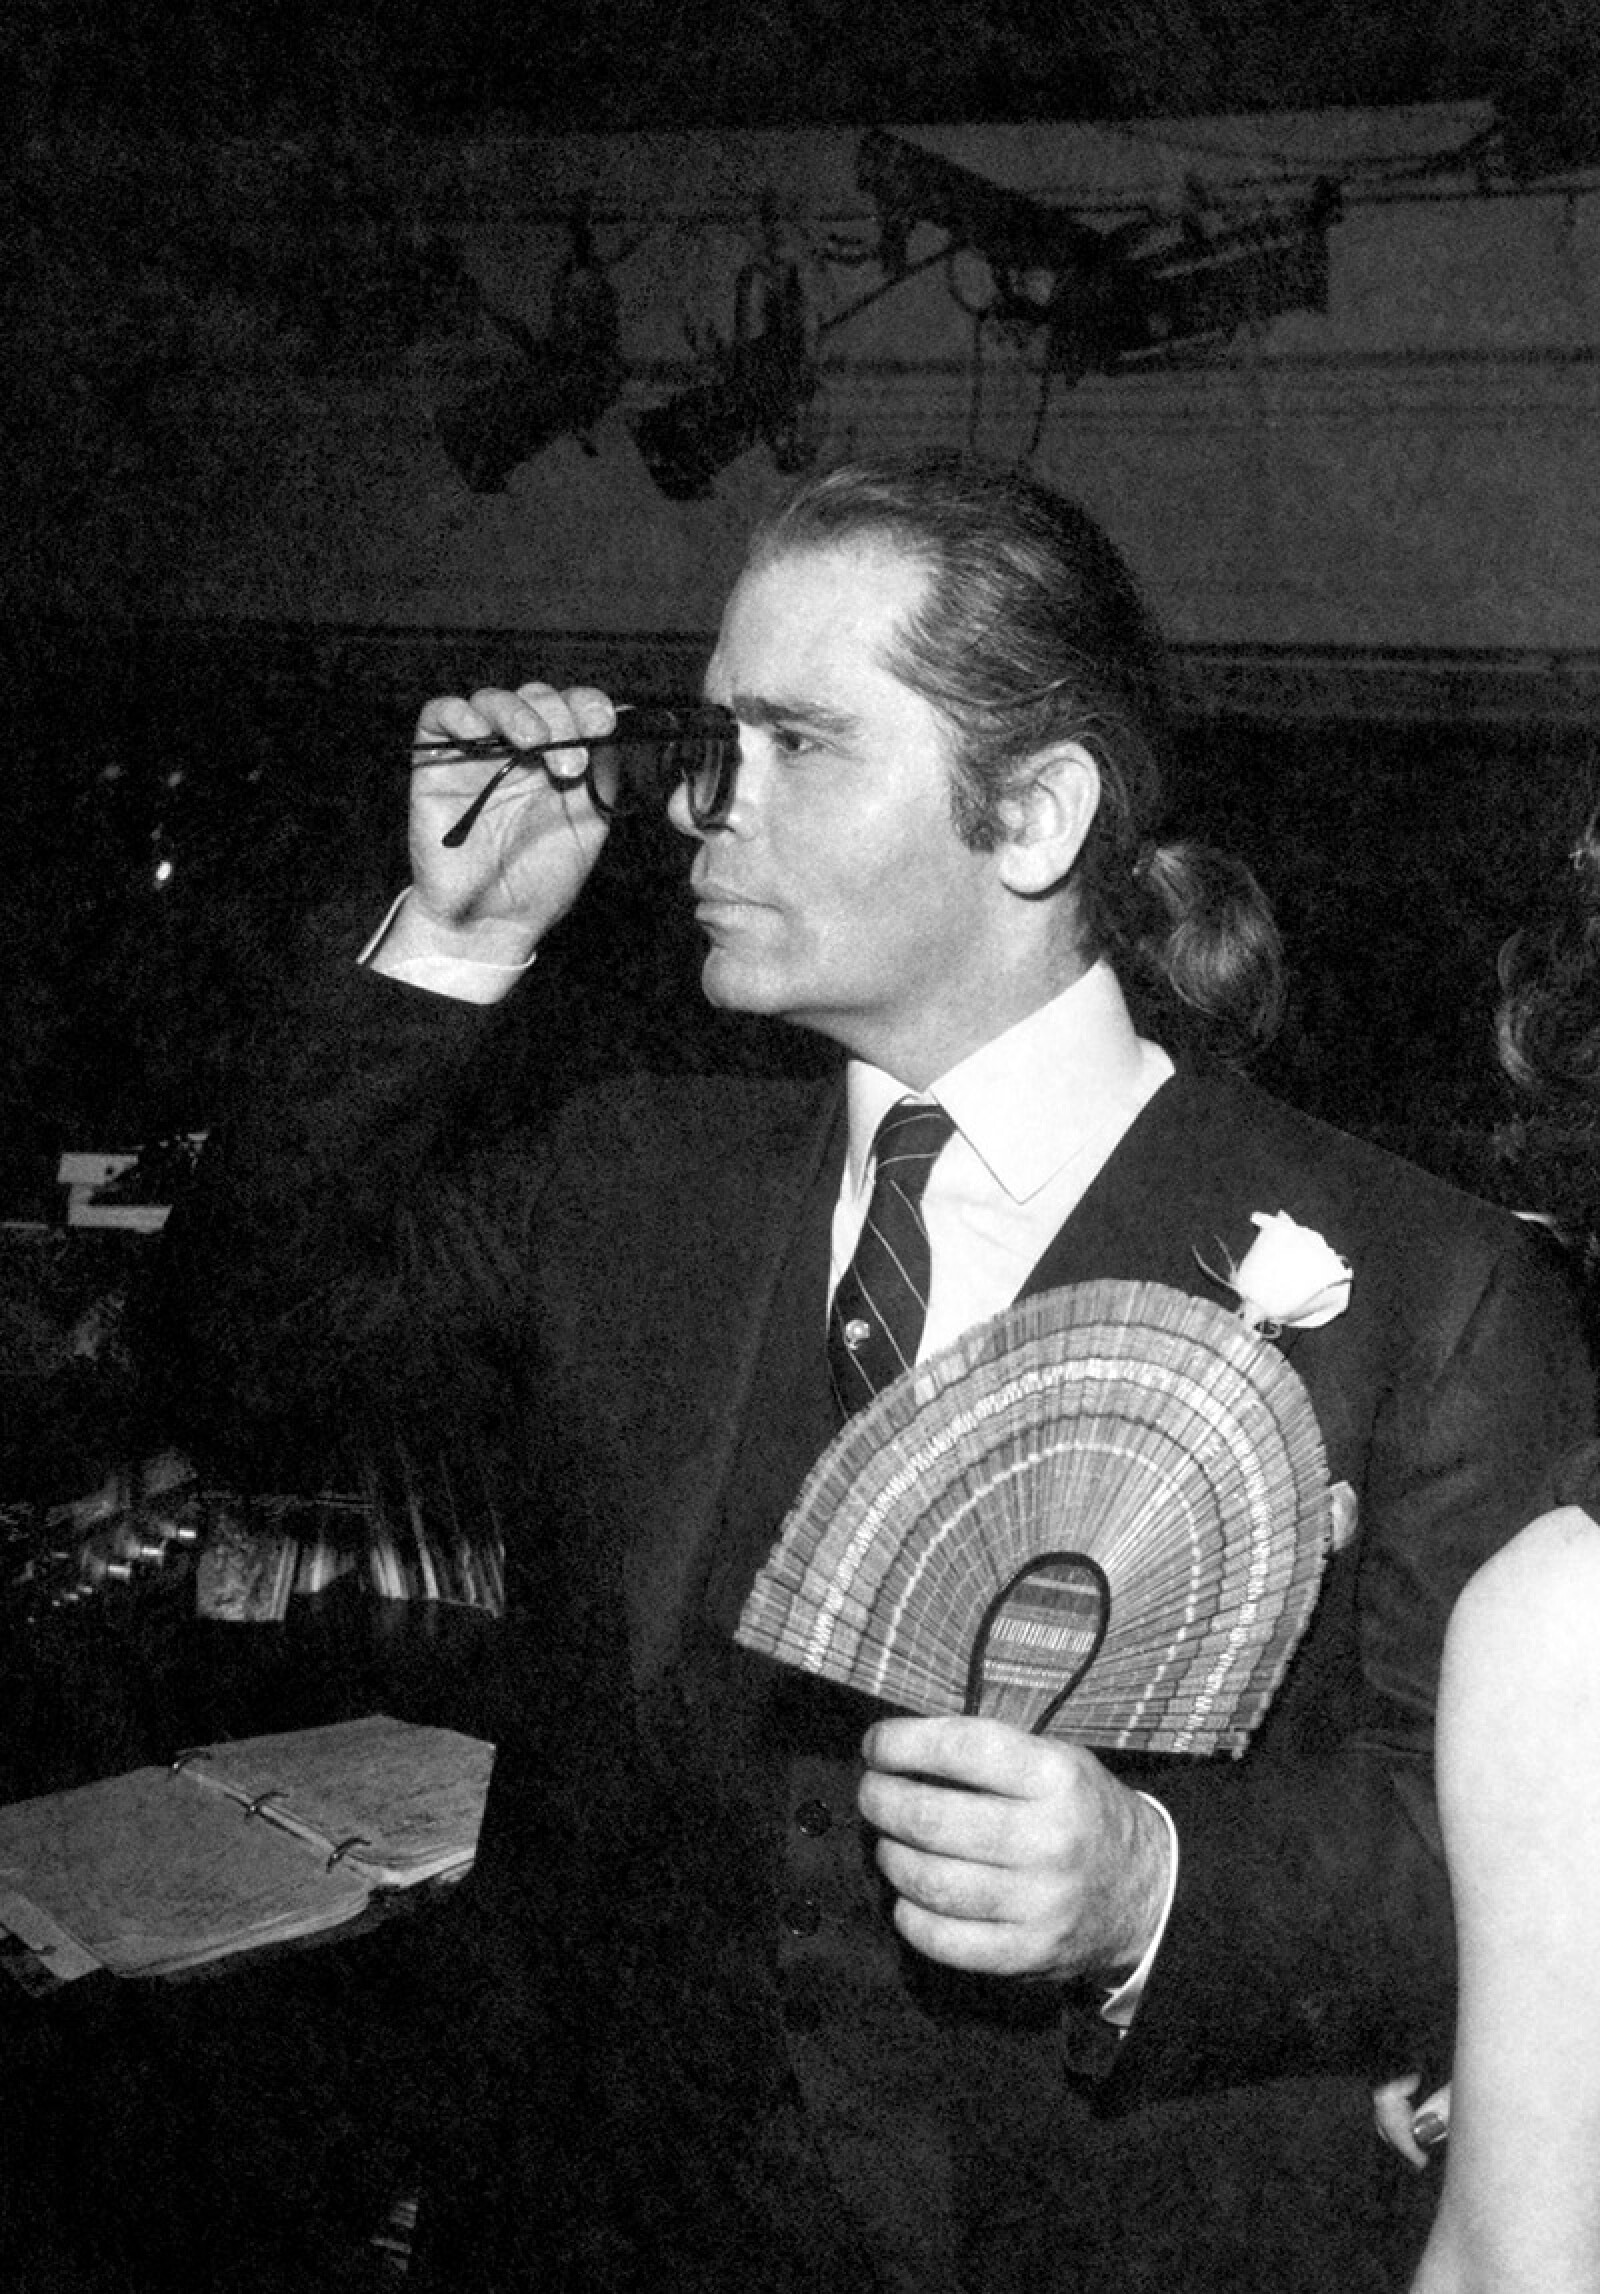 Lagerfeld Party at Studio 54